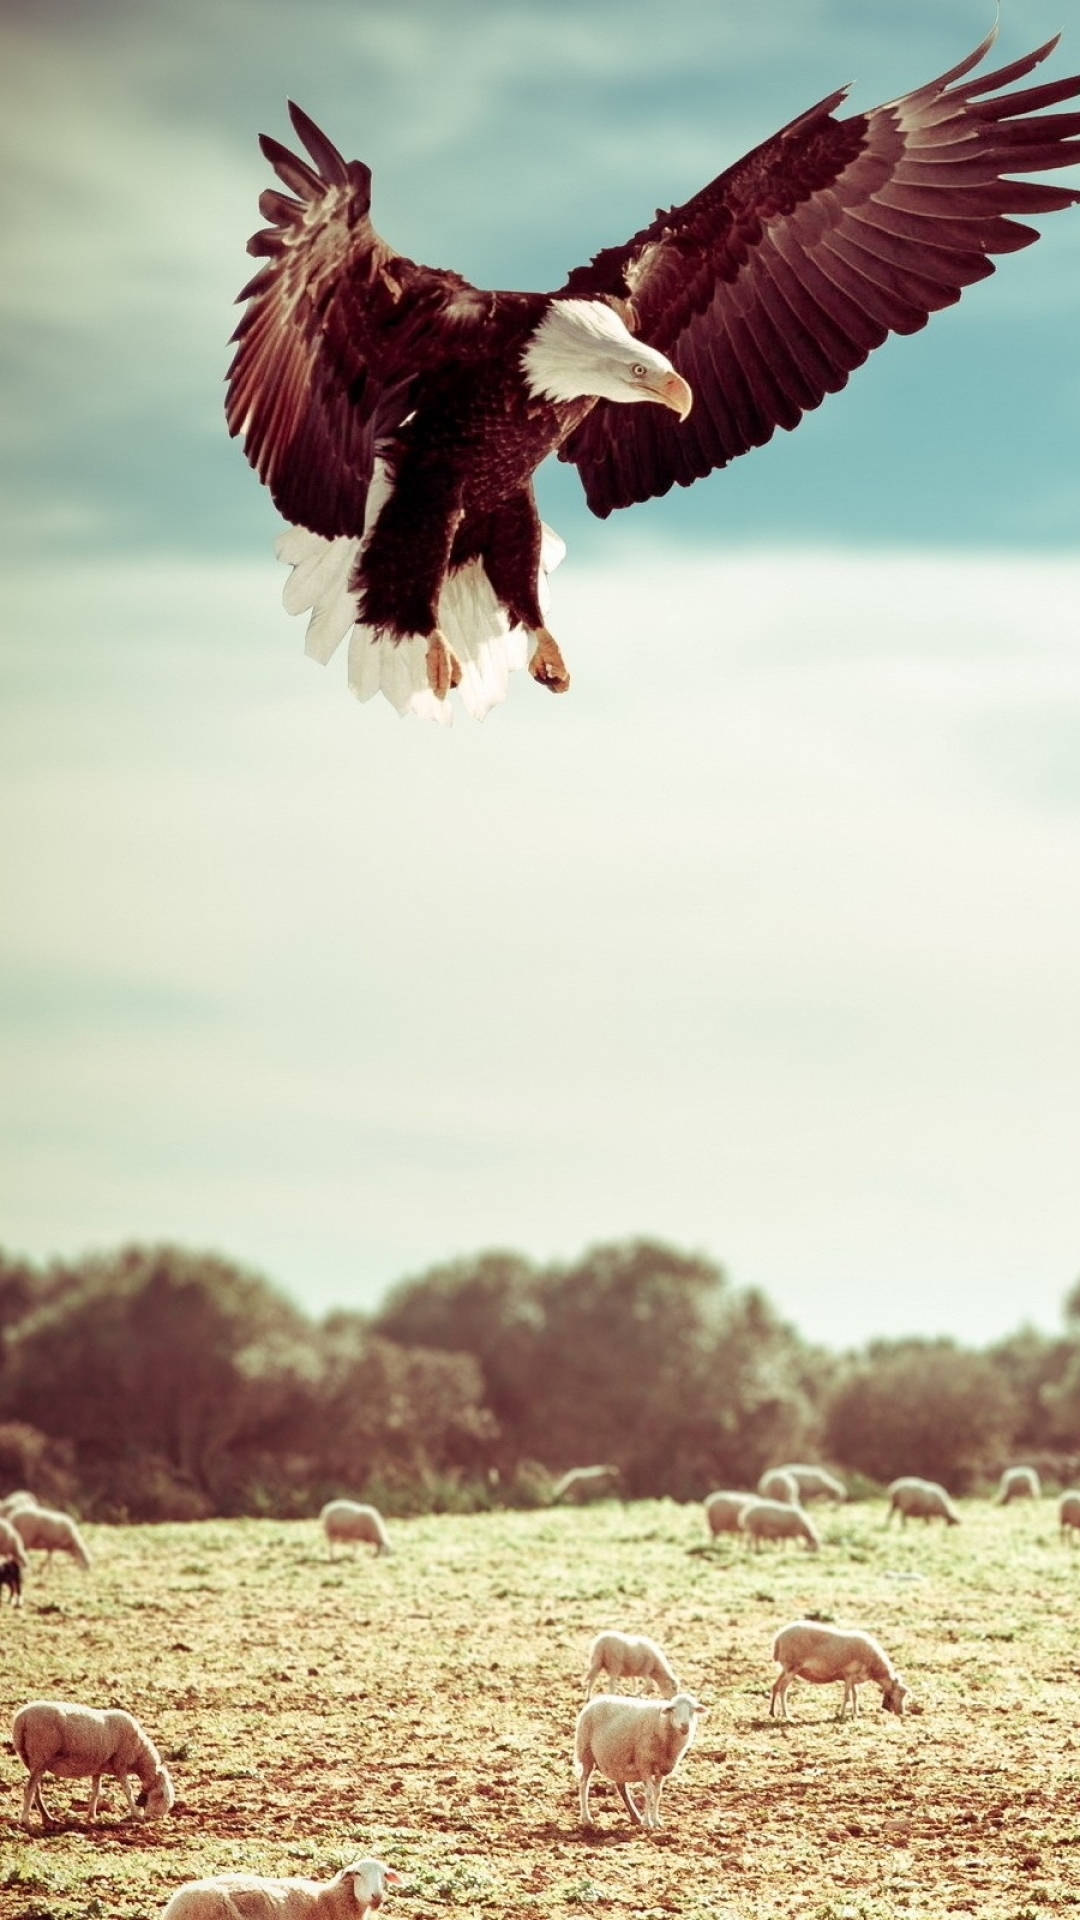 iphone wallpaper eagle field Eagle